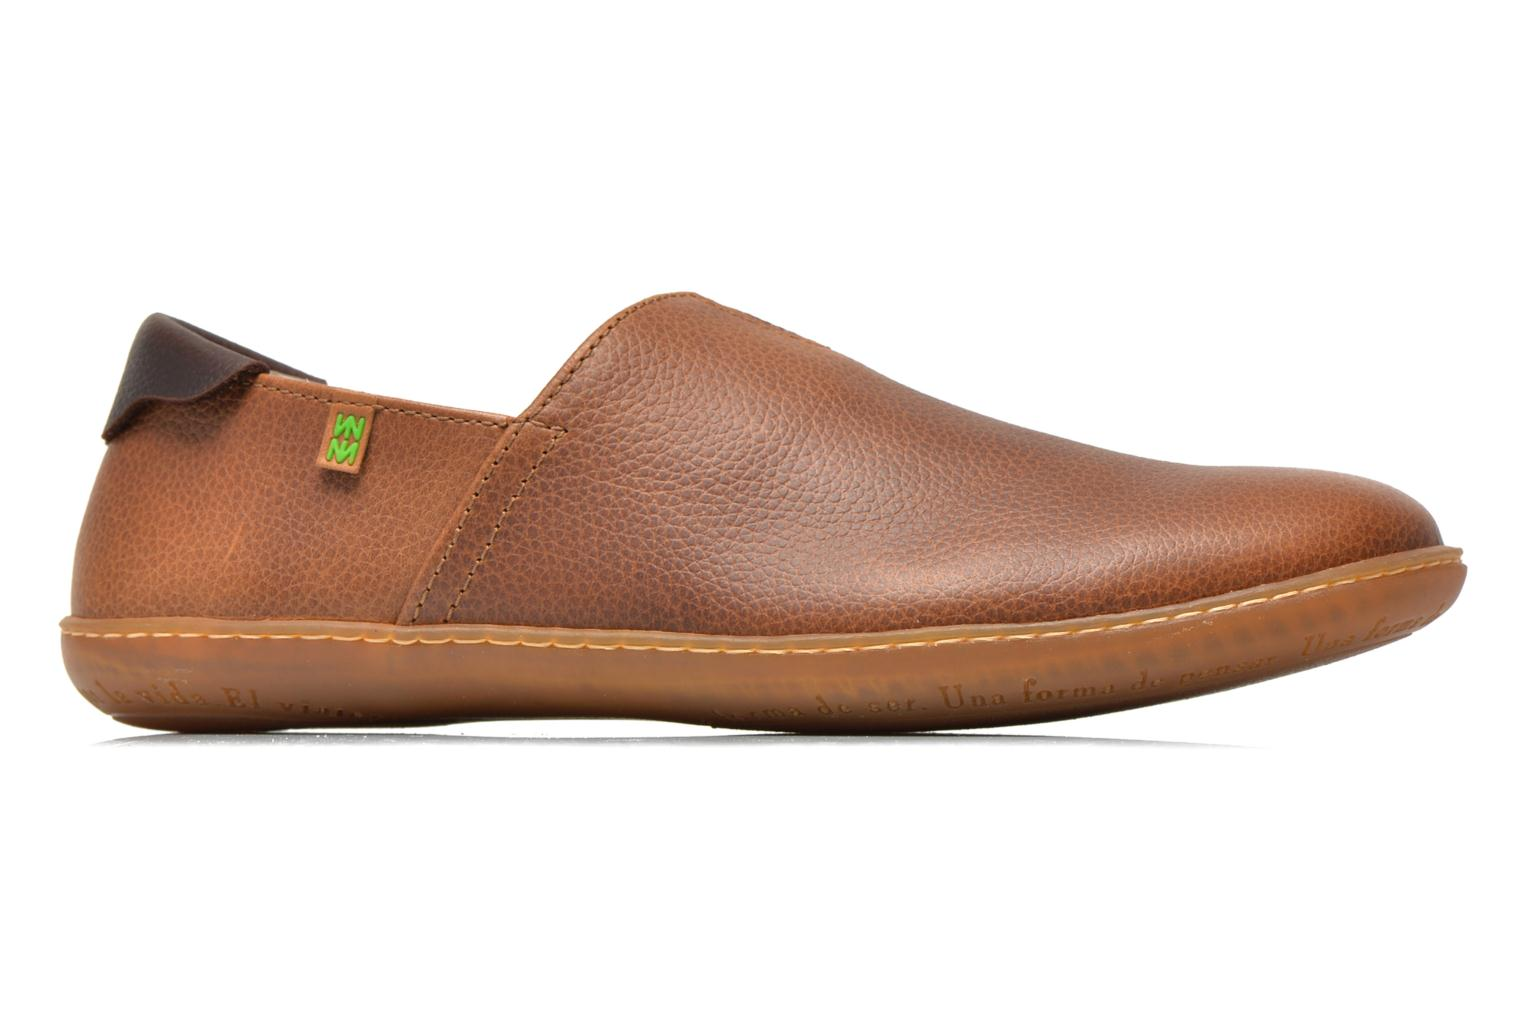 Brown Naturalista Wood Viajero N°275 El Moc fXqCX8